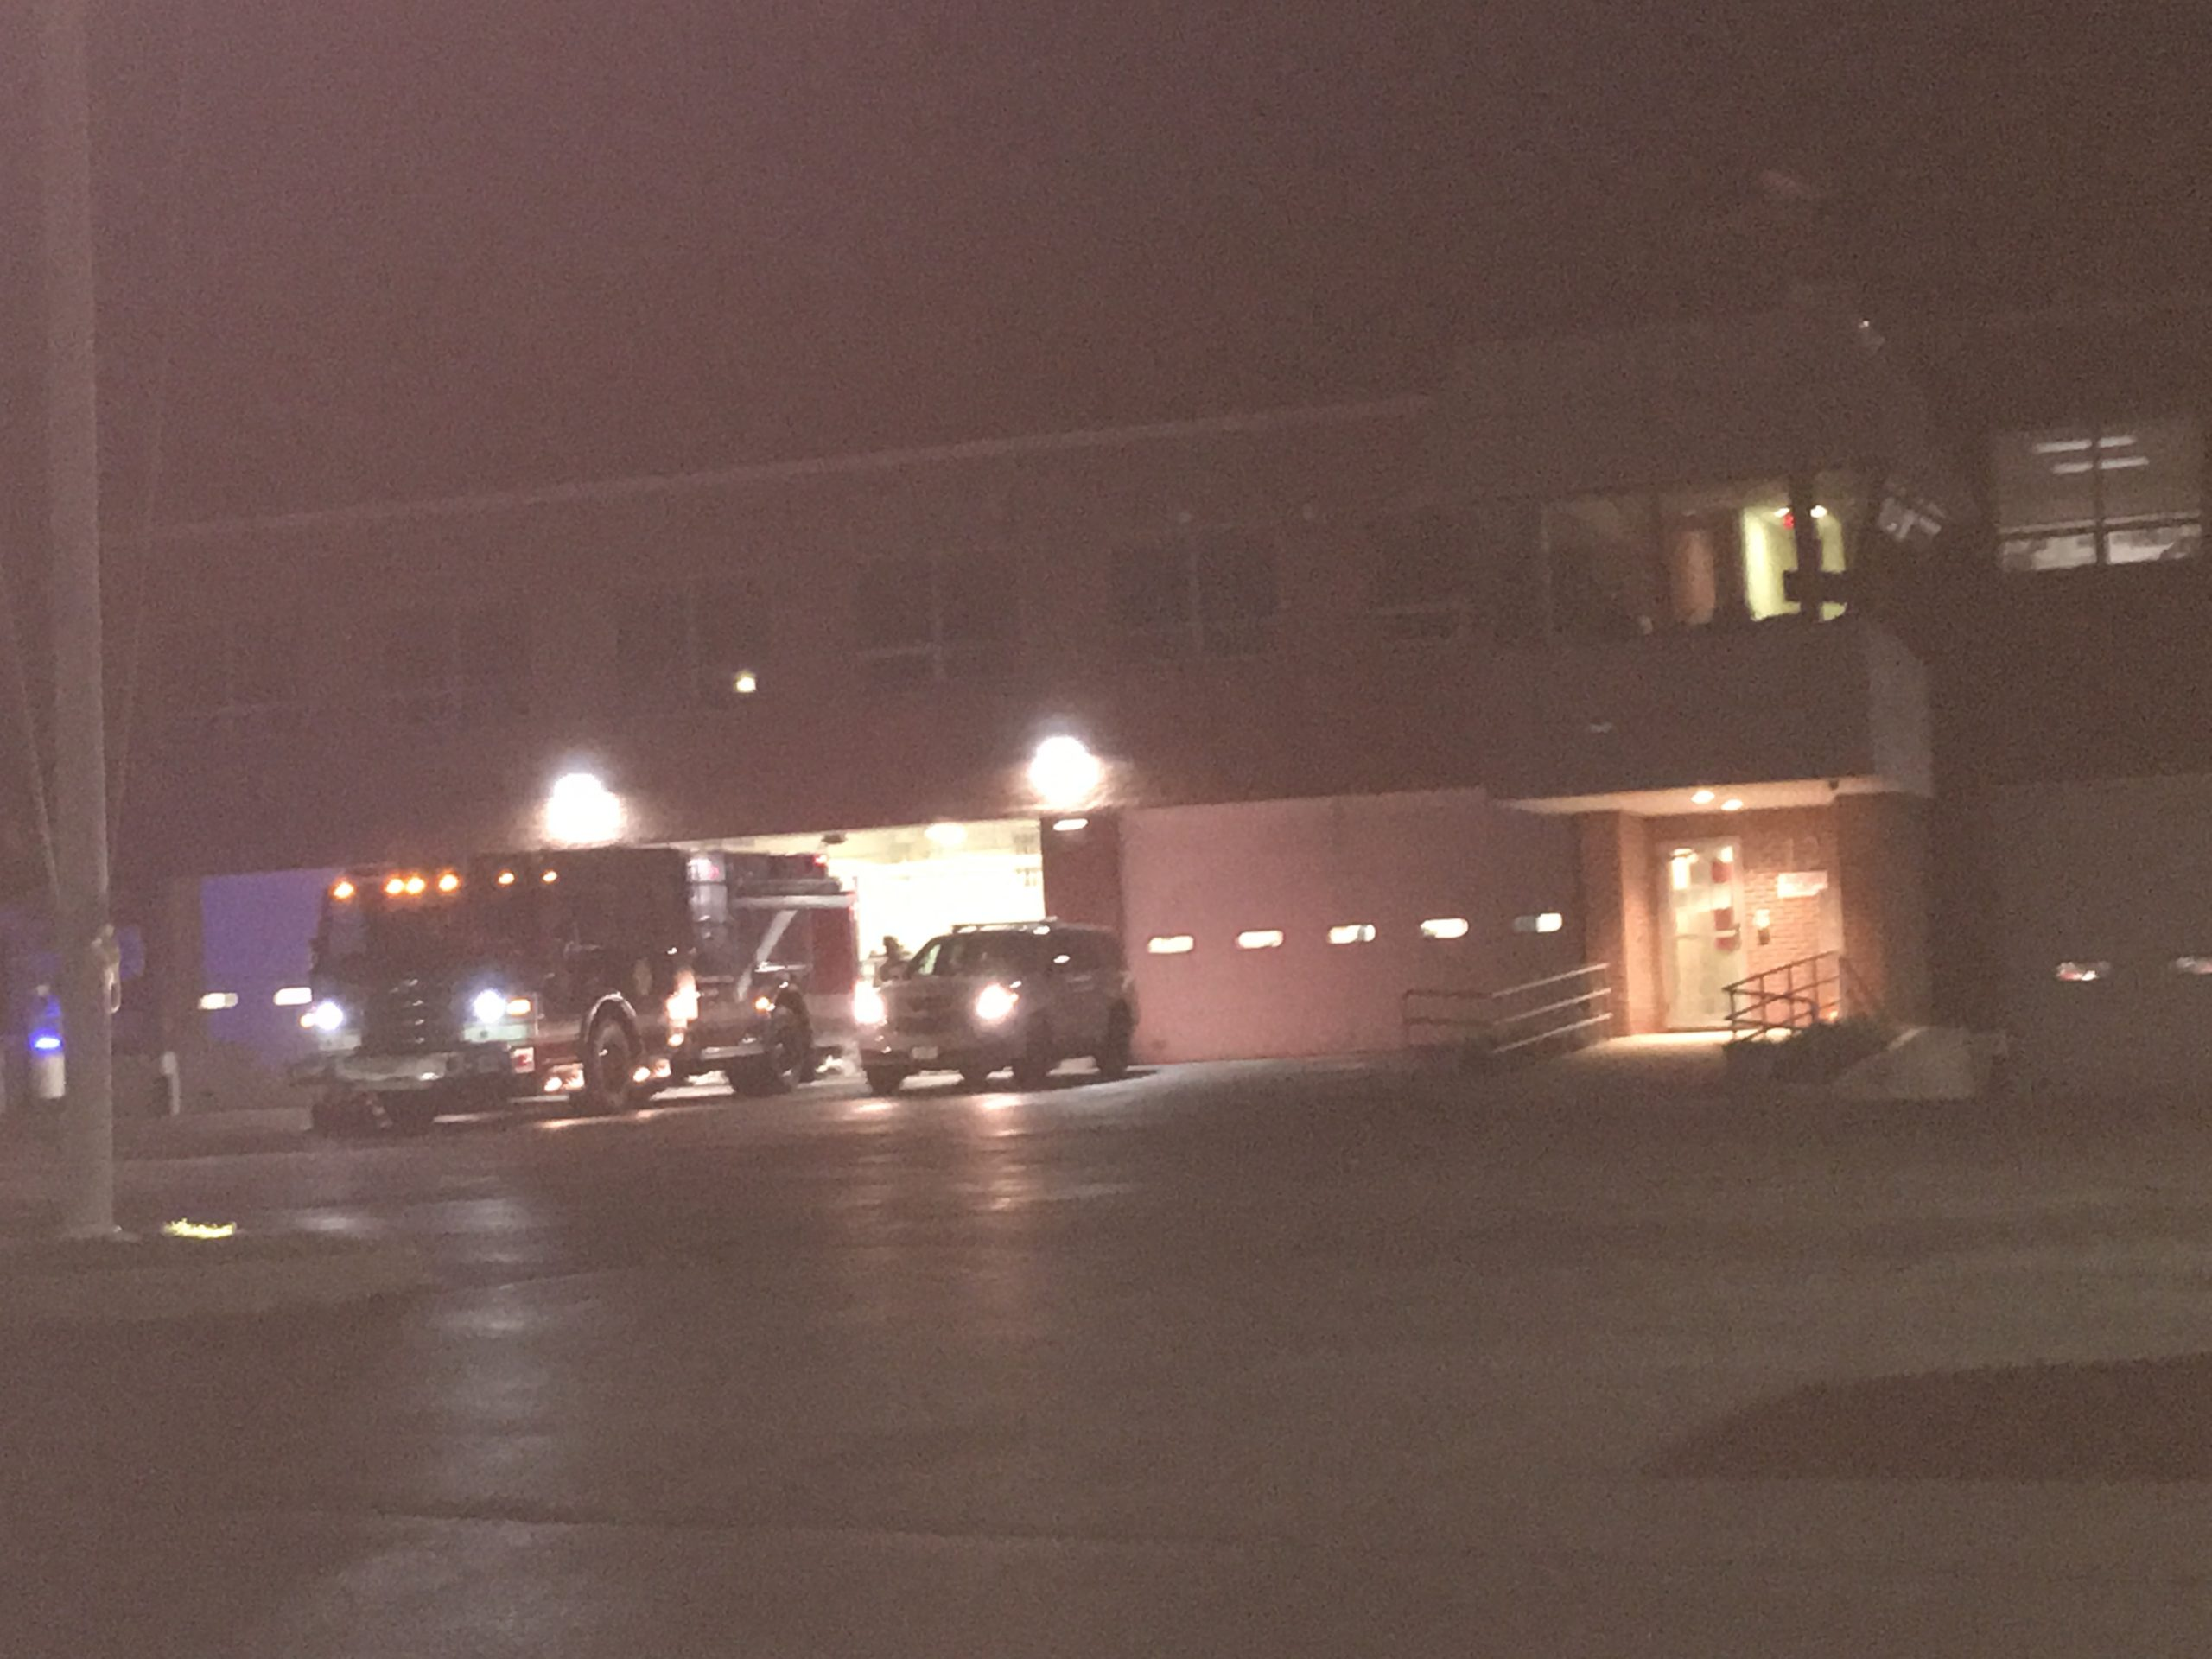 Fire departments waiting at the Montauk Fire Department headquarters.